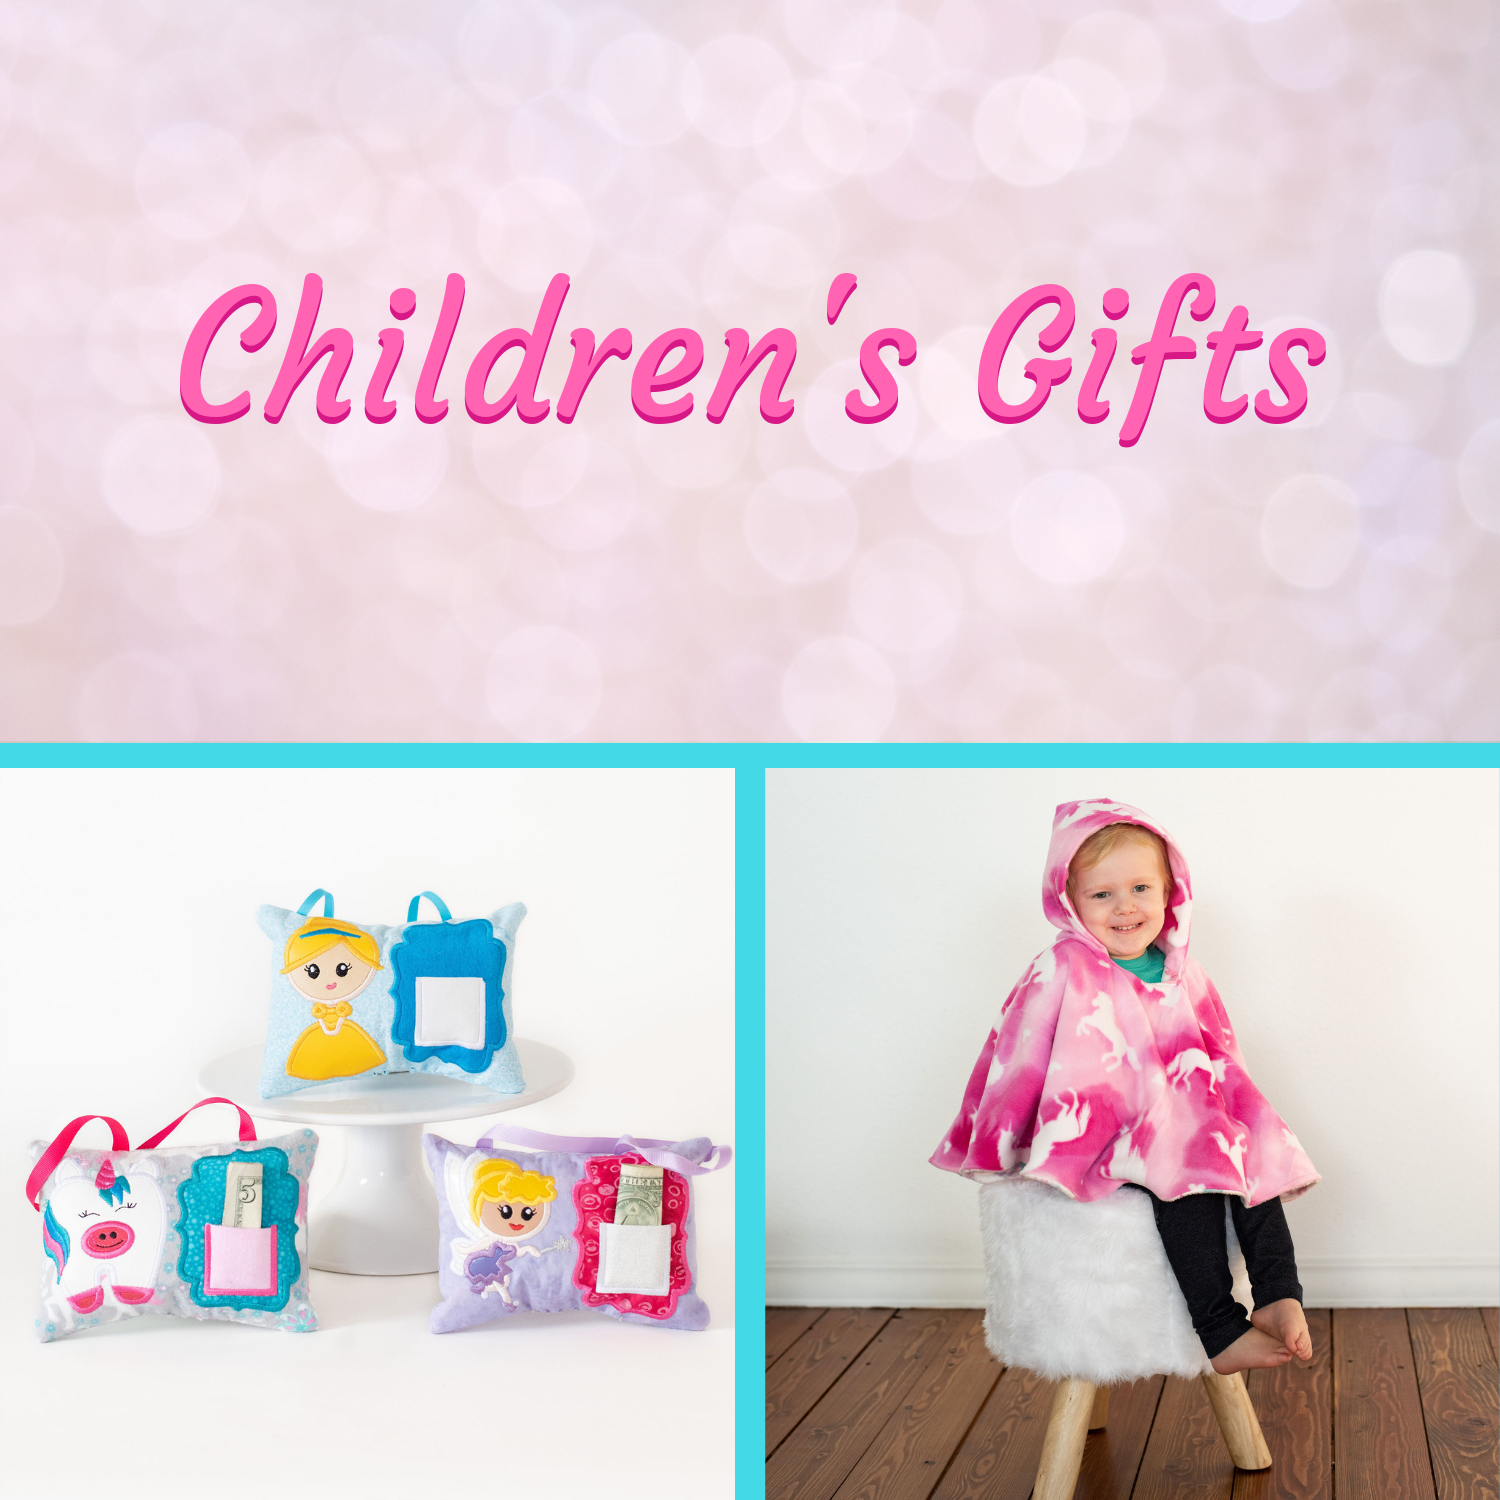 Children's gifts (2).png